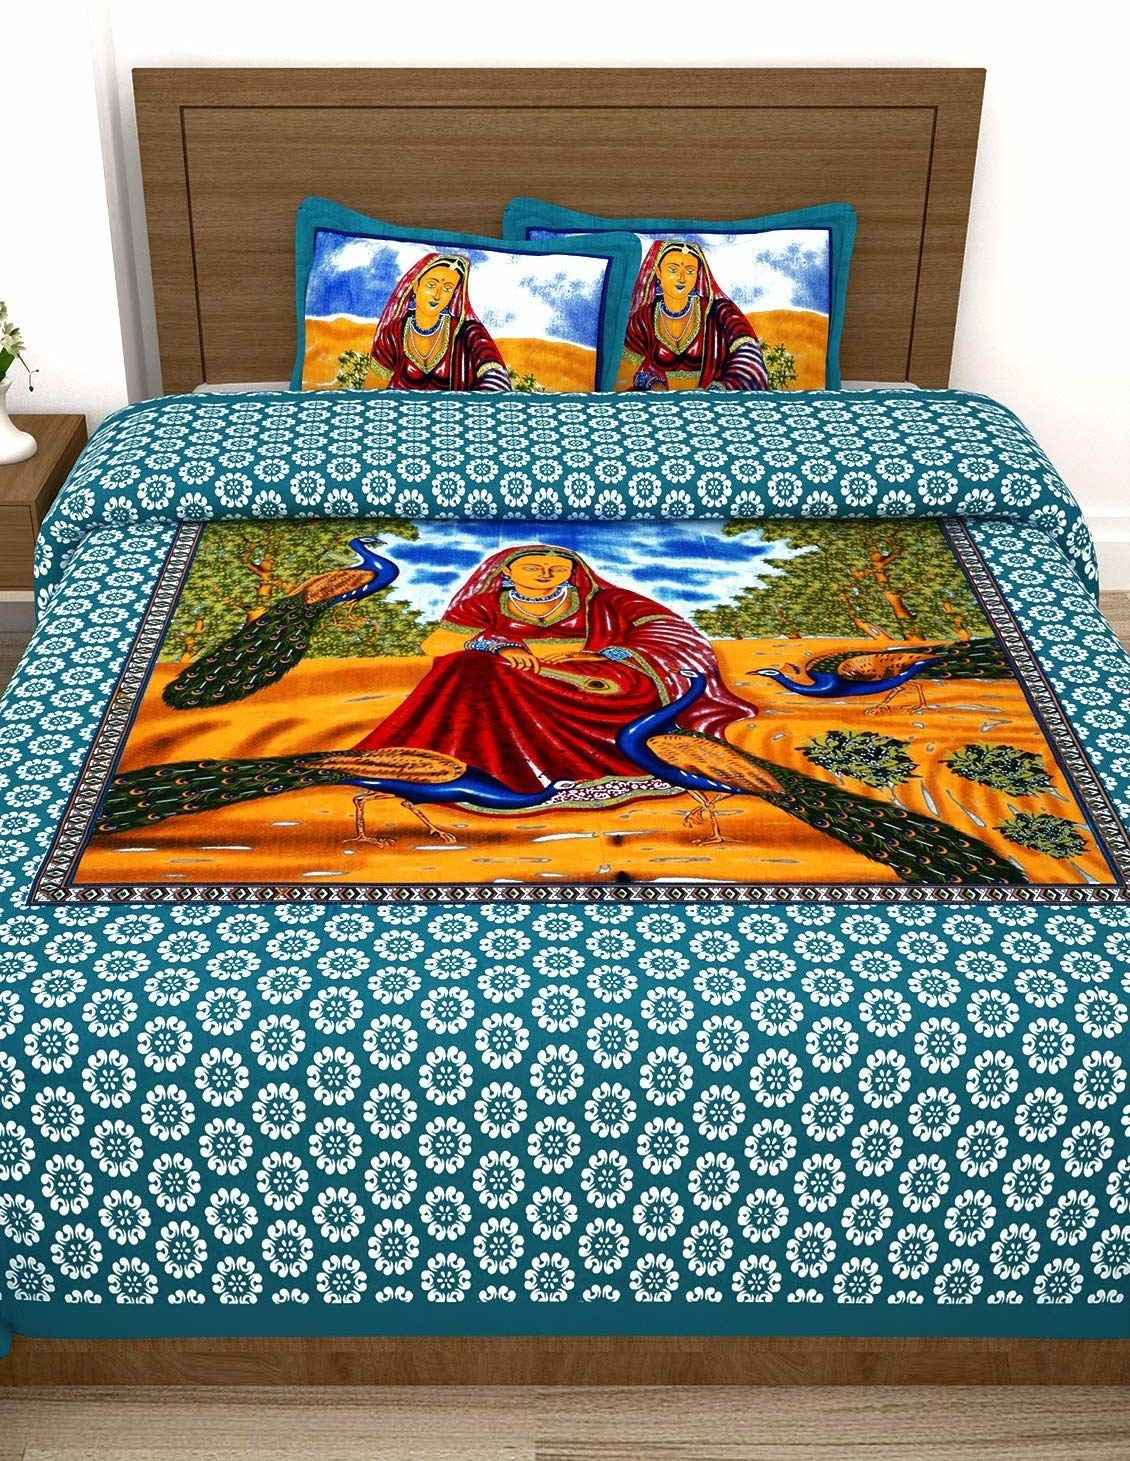 A blue and white Rajasthani bedsheet